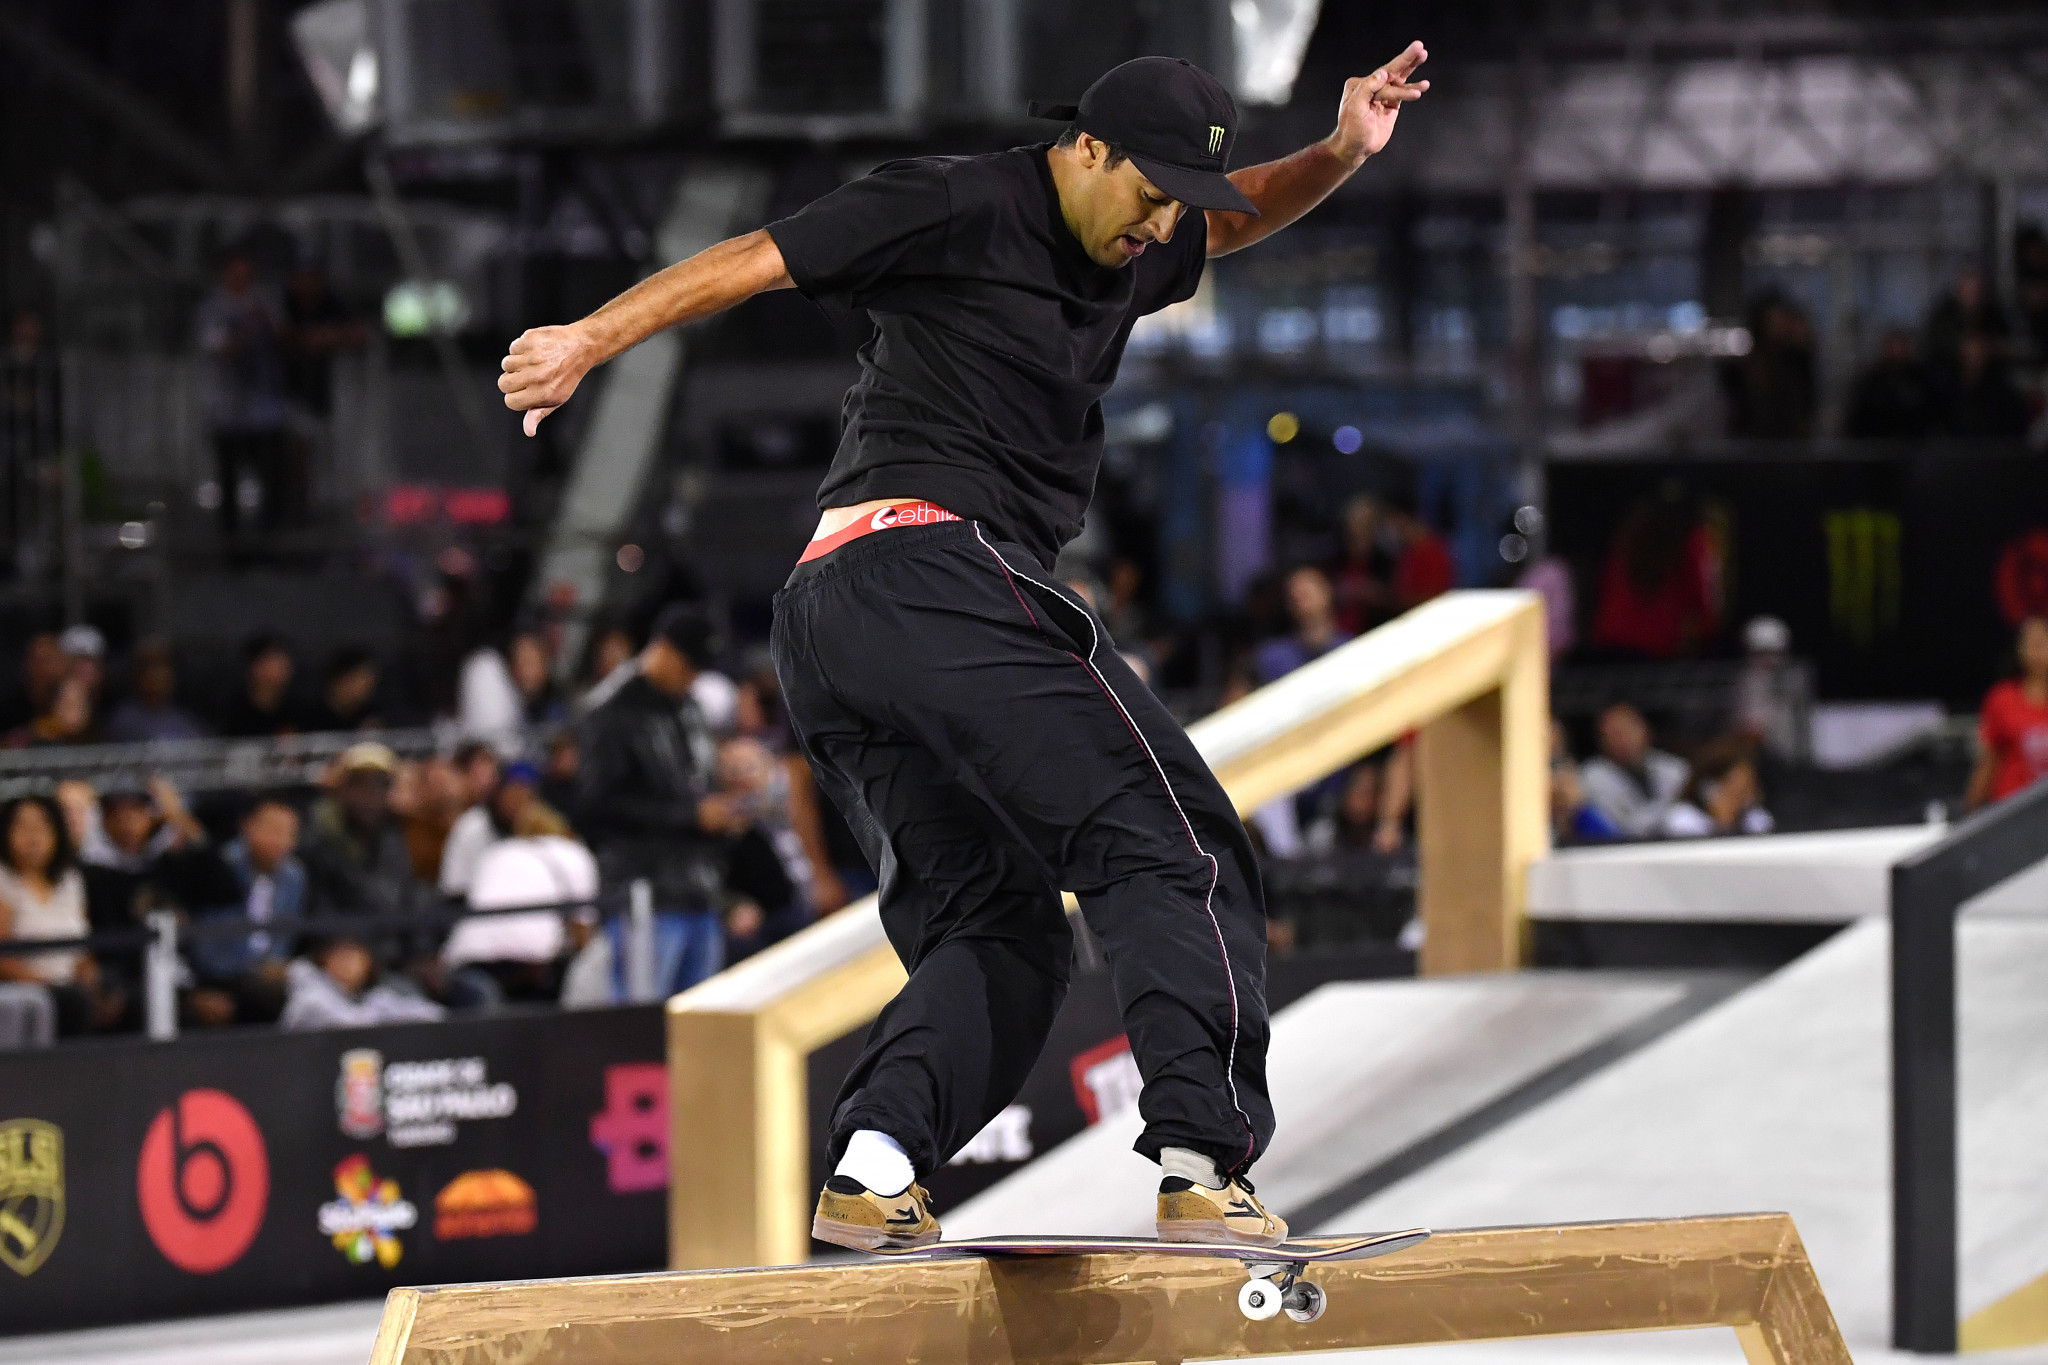 Skateboarding is to make its Olympic debut in Tokyo this year ©Getty Images